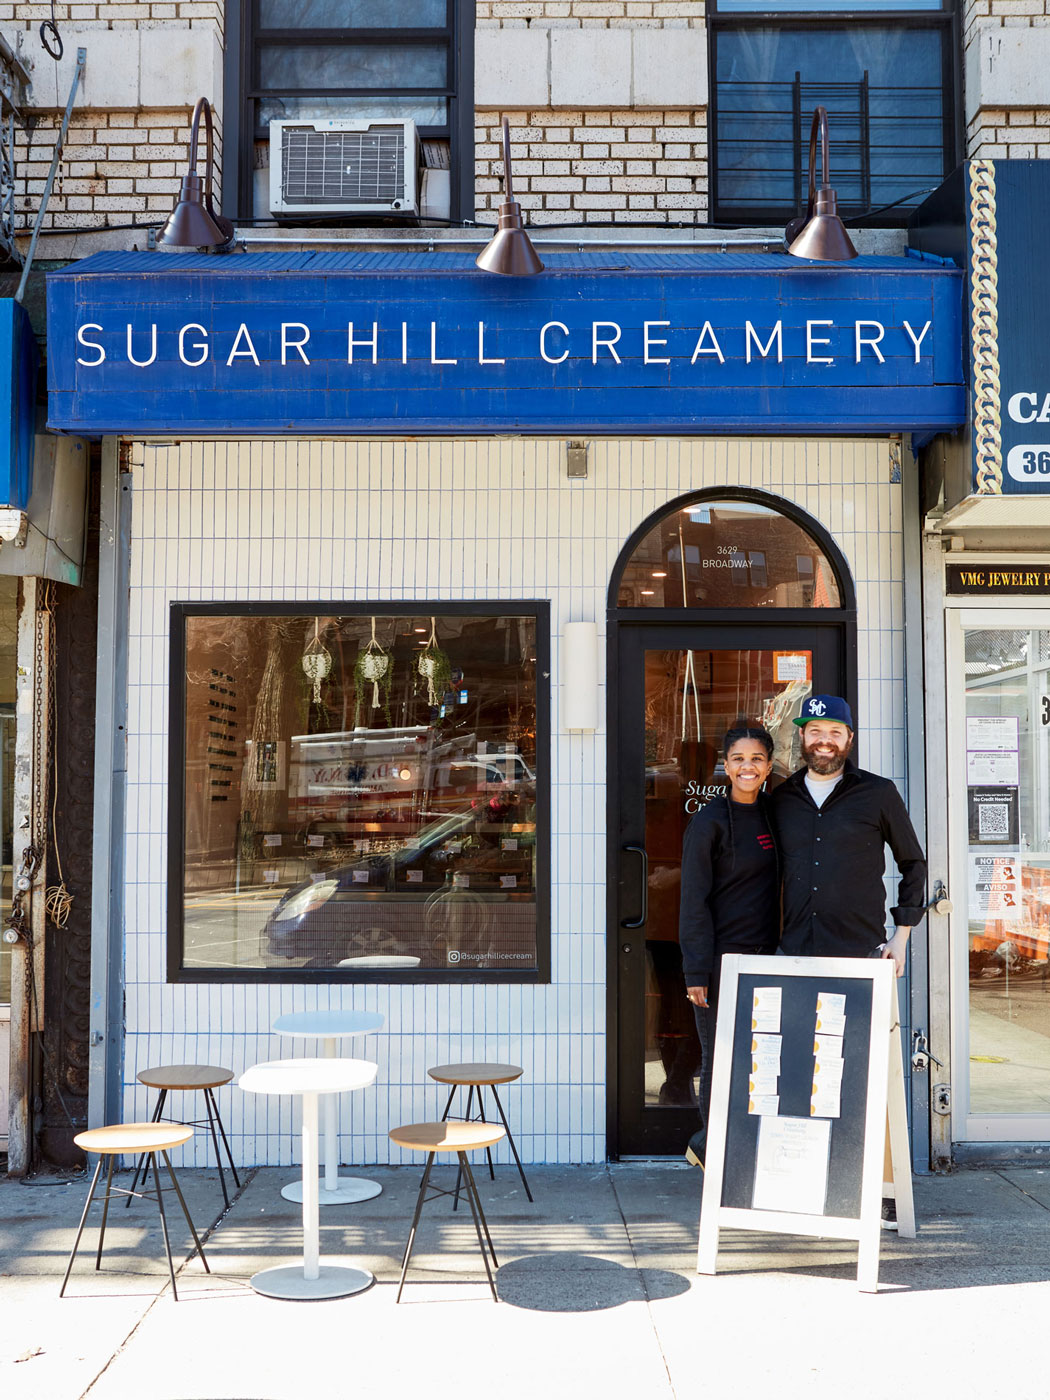 The exterior of Sugar Hill Creamery.